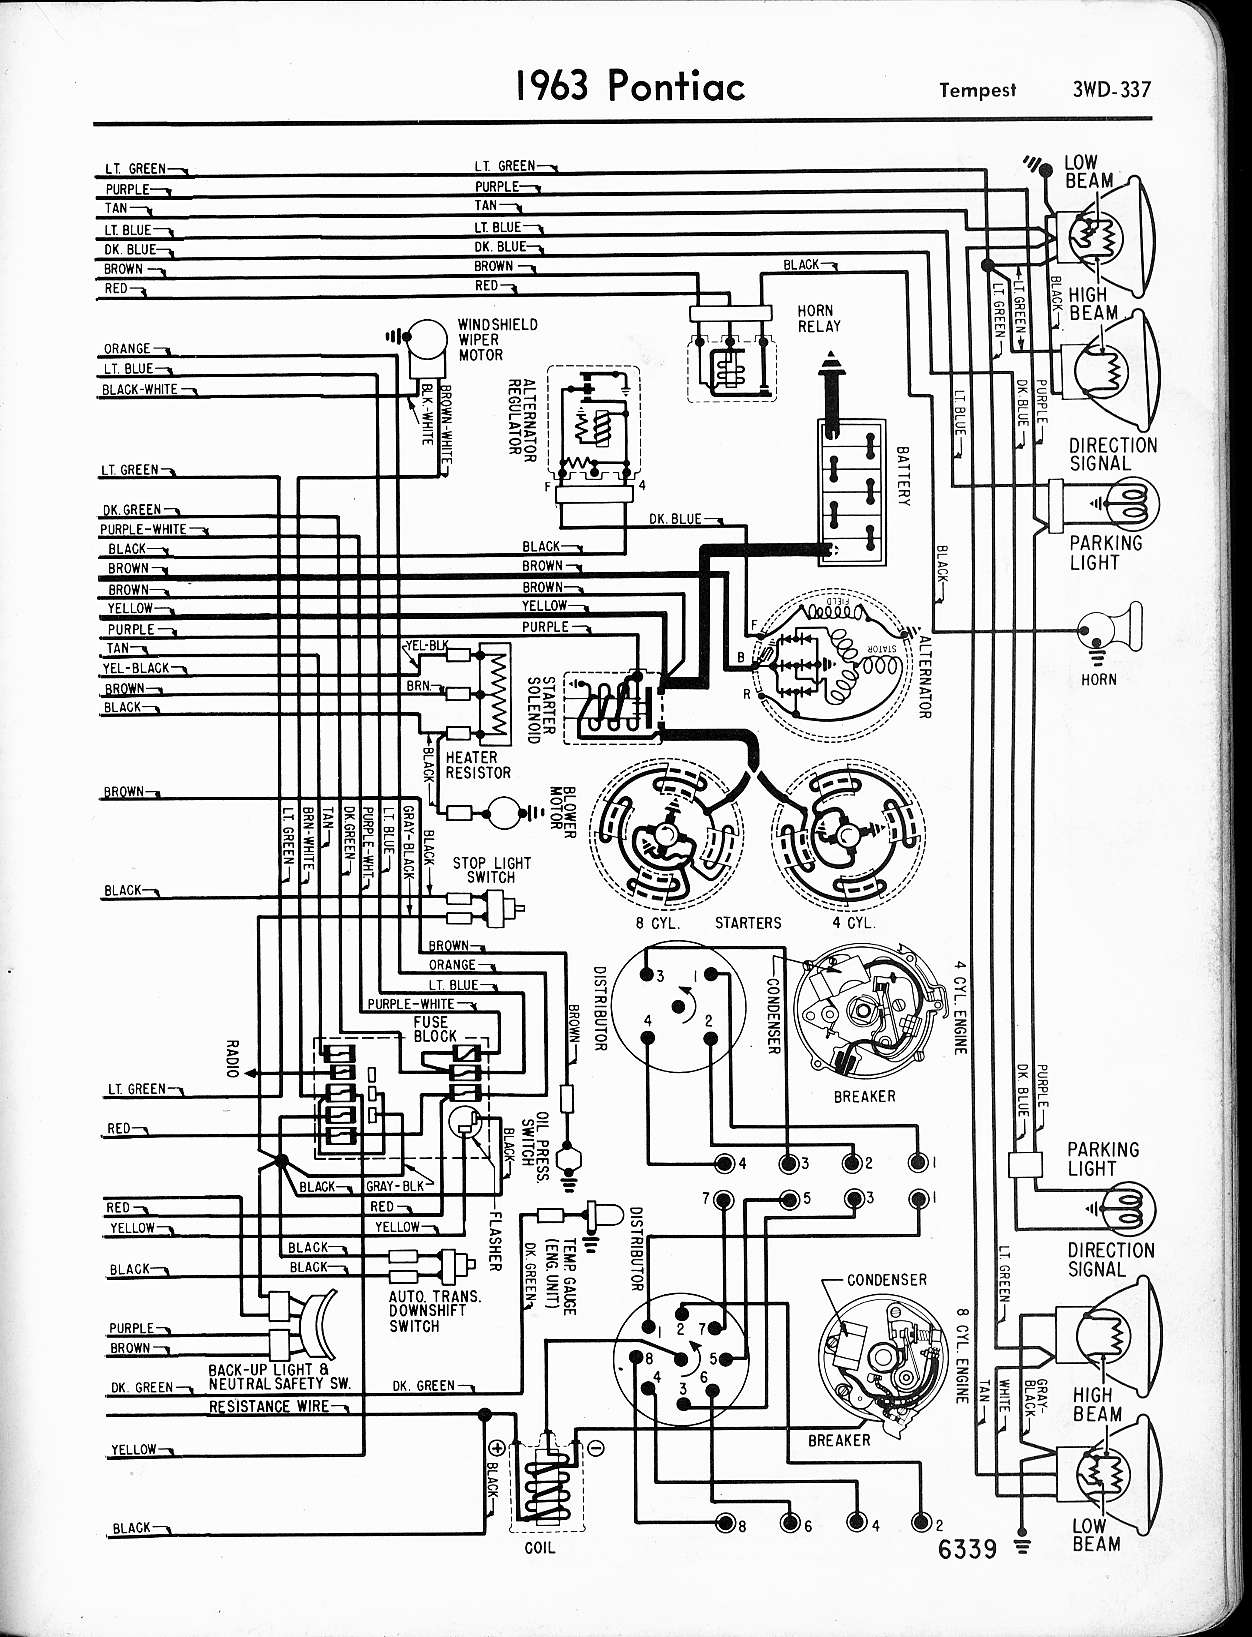 Wrg 2199 68 Camaro Dash Wiring Diagram Free Picture Moreover Harley Davidson Rear Speaker Harness Horn Relay Download Images Gallery Pontiac Gto Tail Light